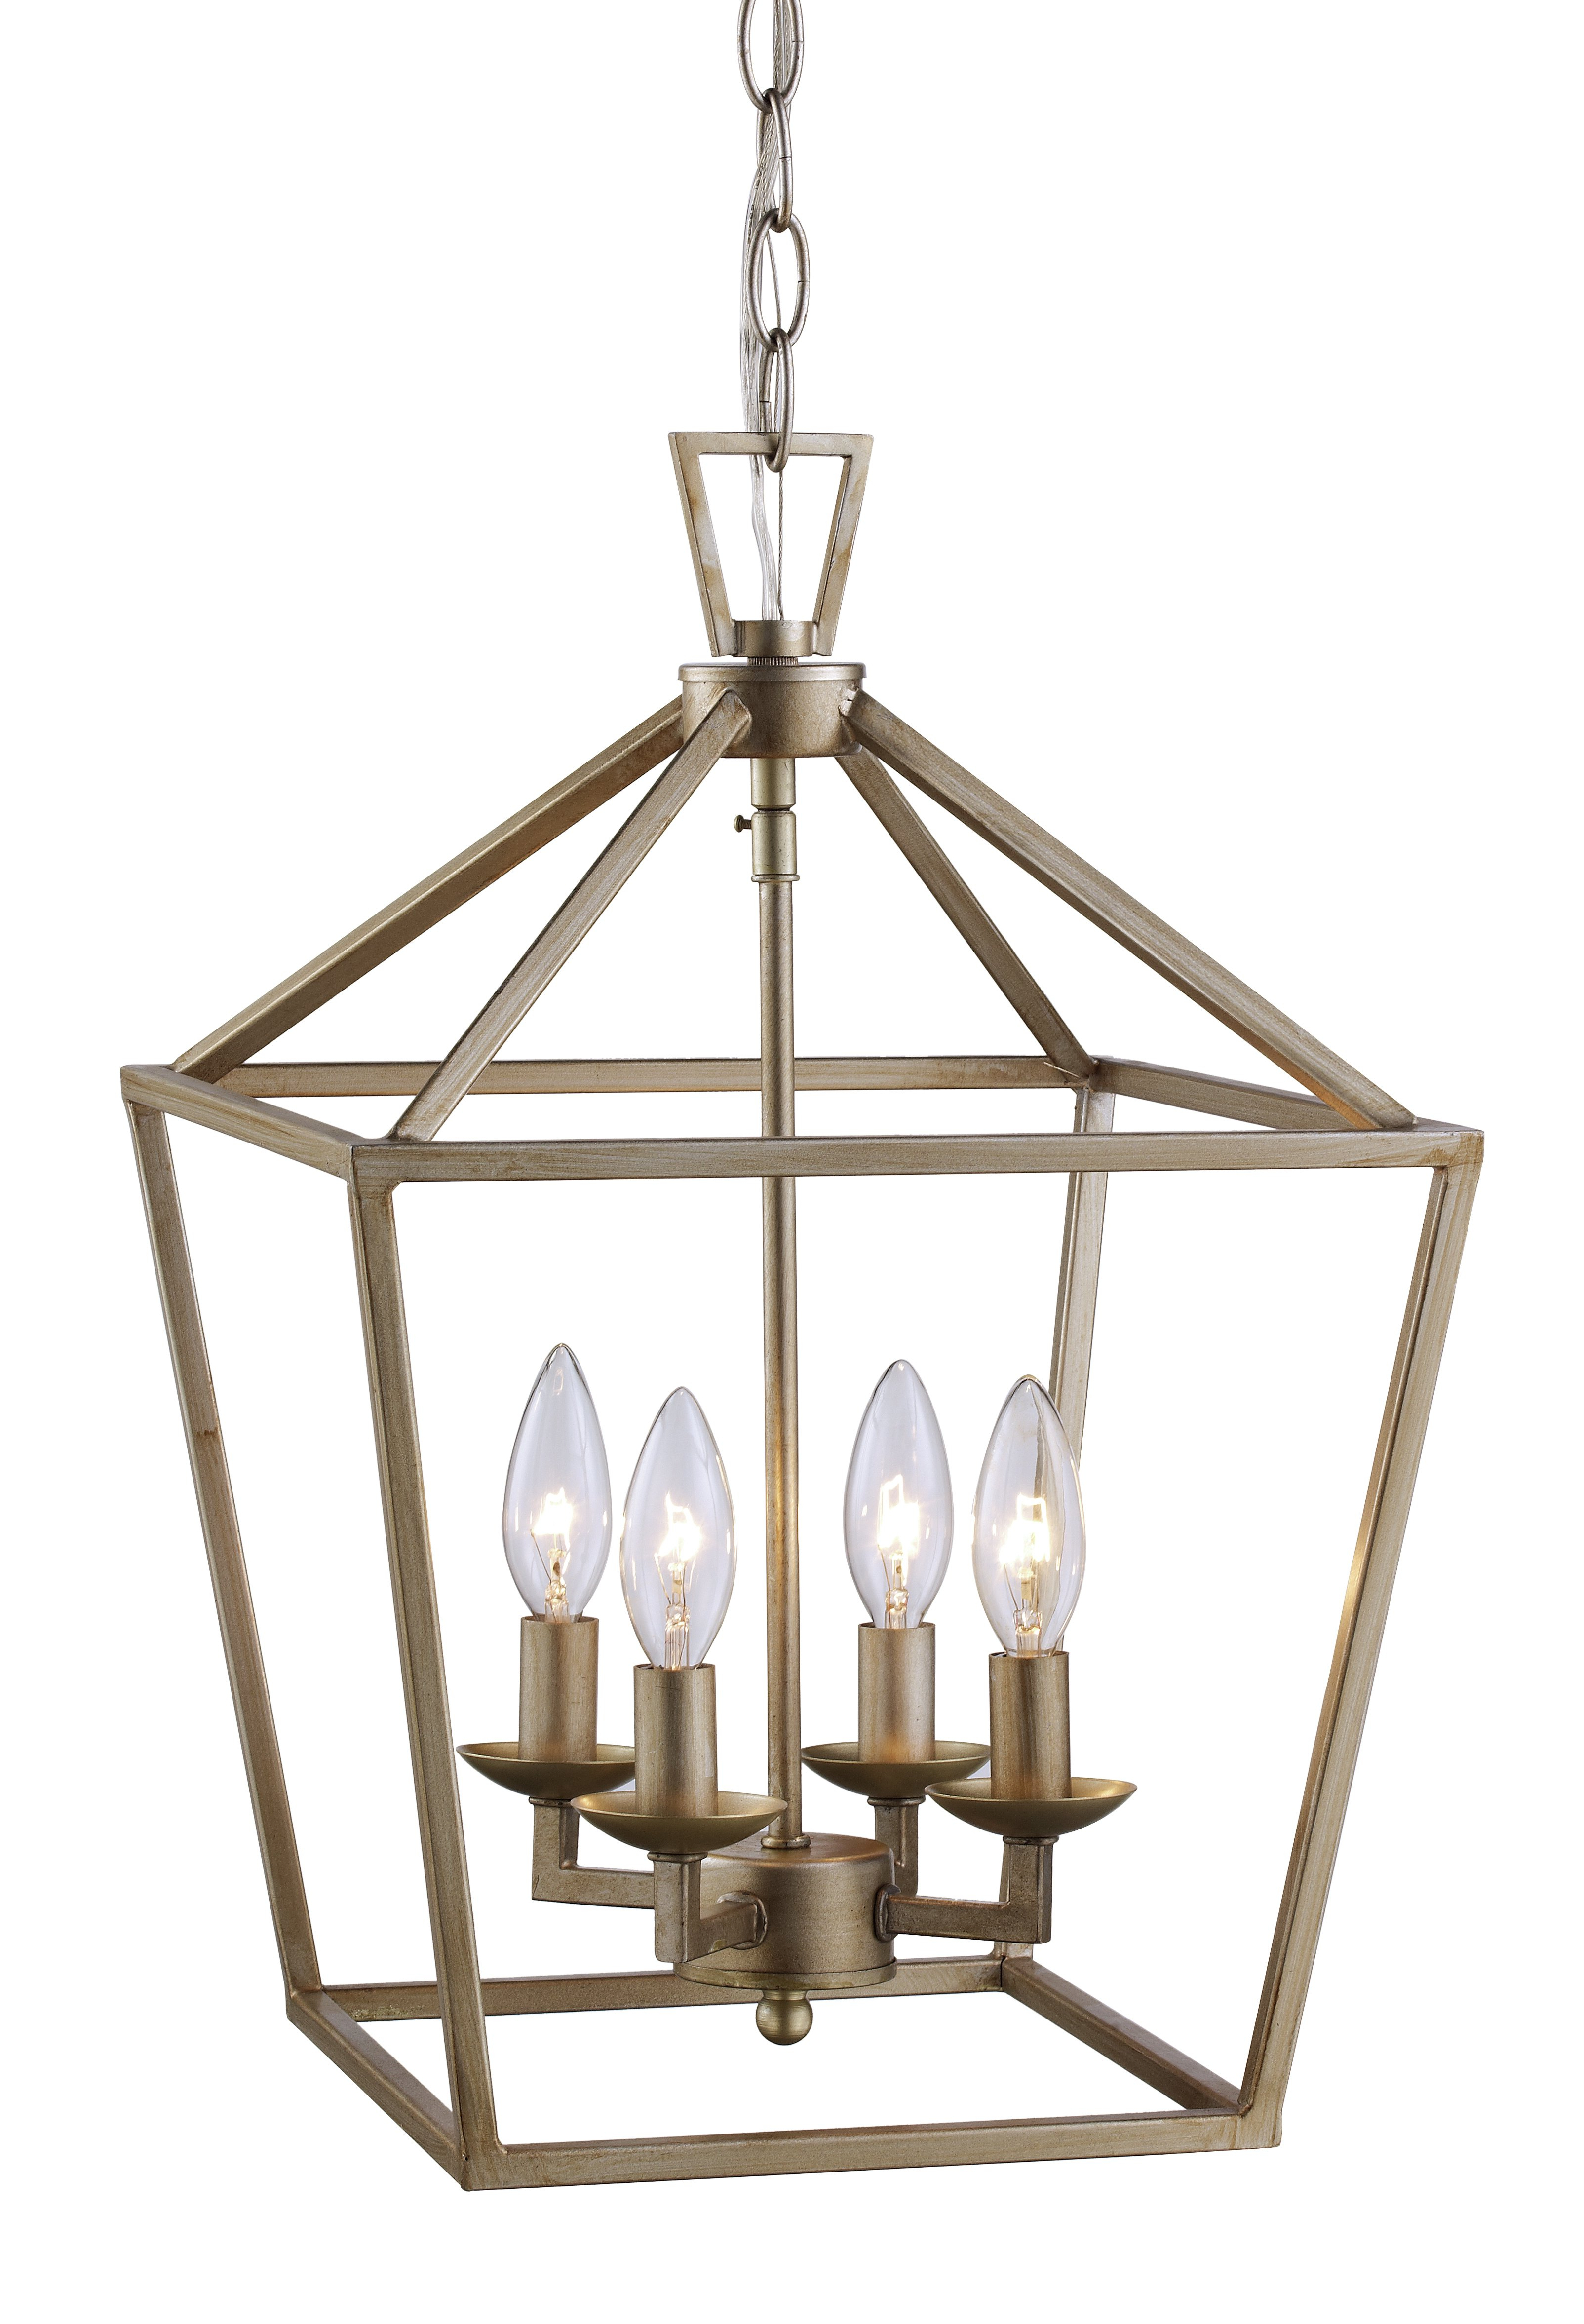 Trendy Laurel Foundry Modern Farmhouse Carmen 4 Light Lantern Geometric Pendant In Taya 4 Light Lantern Square Pendants (View 19 of 20)